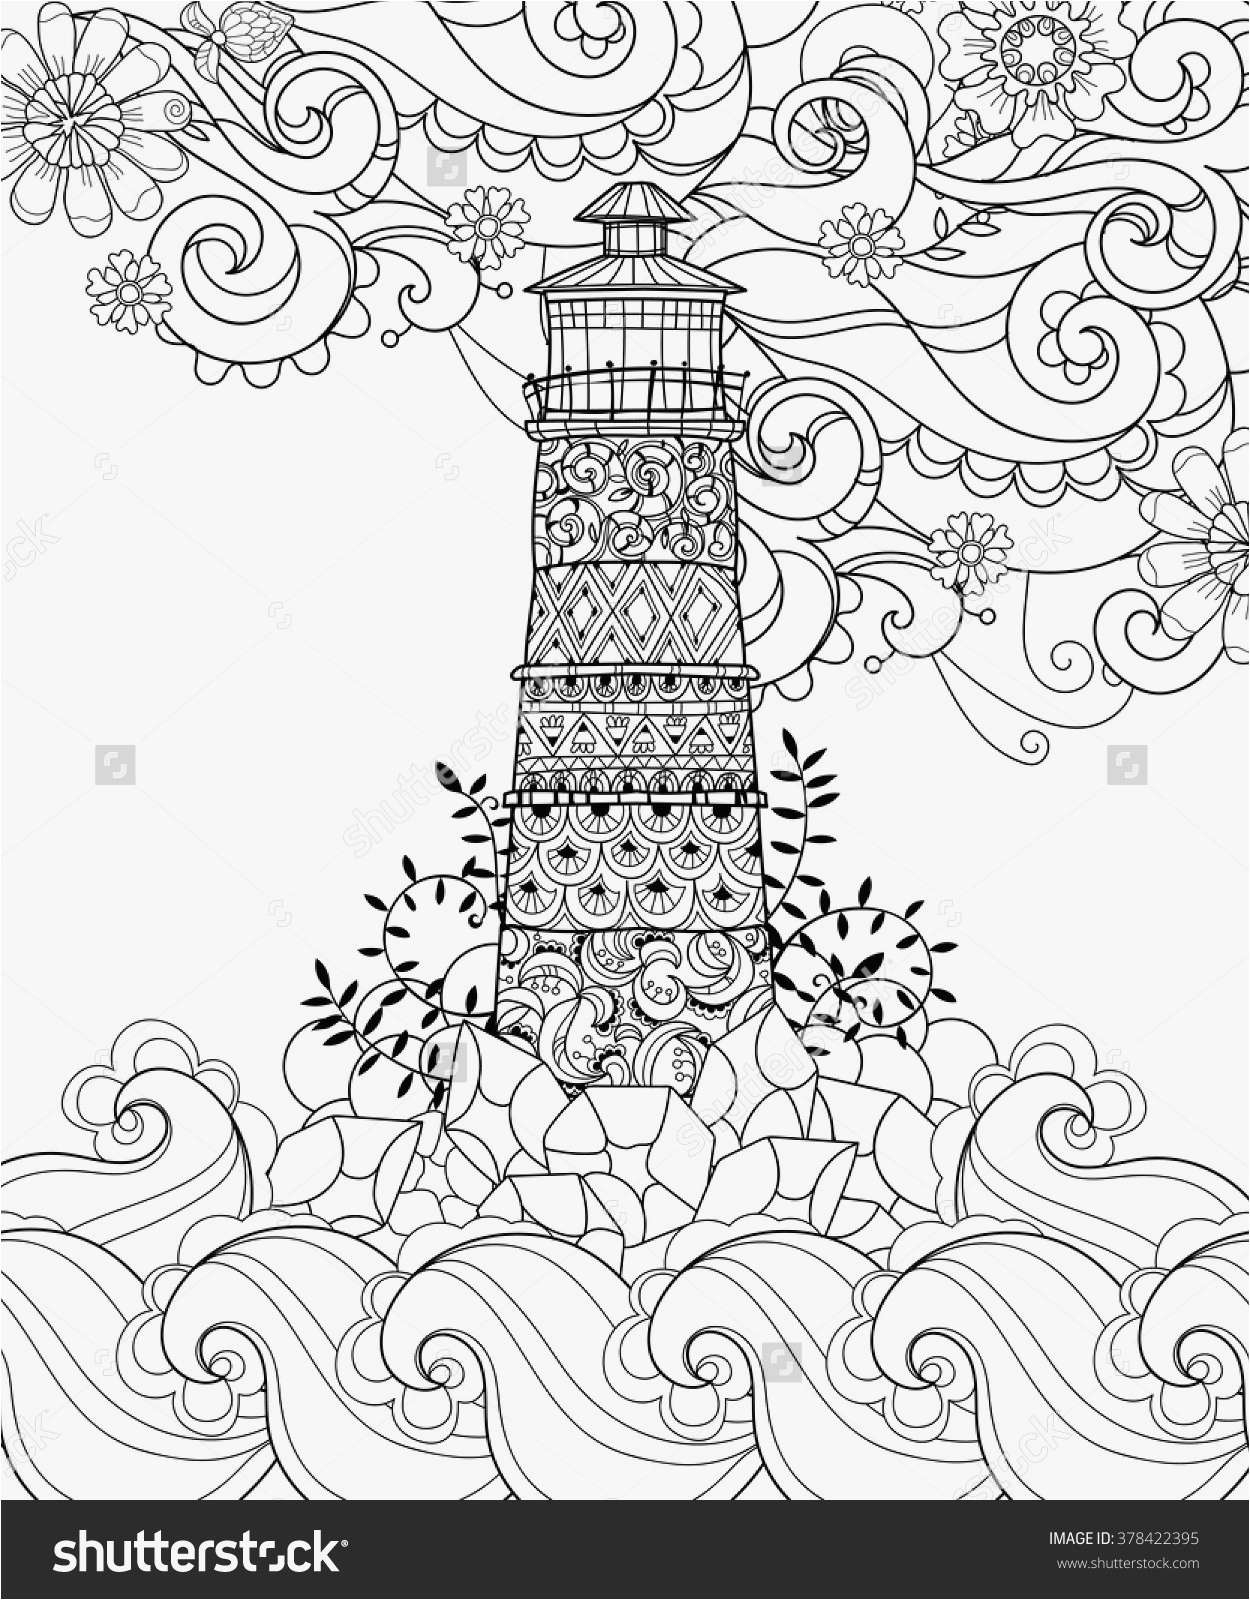 Free Printable Zentangle Coloring Pages  to Print 9b - Free Download